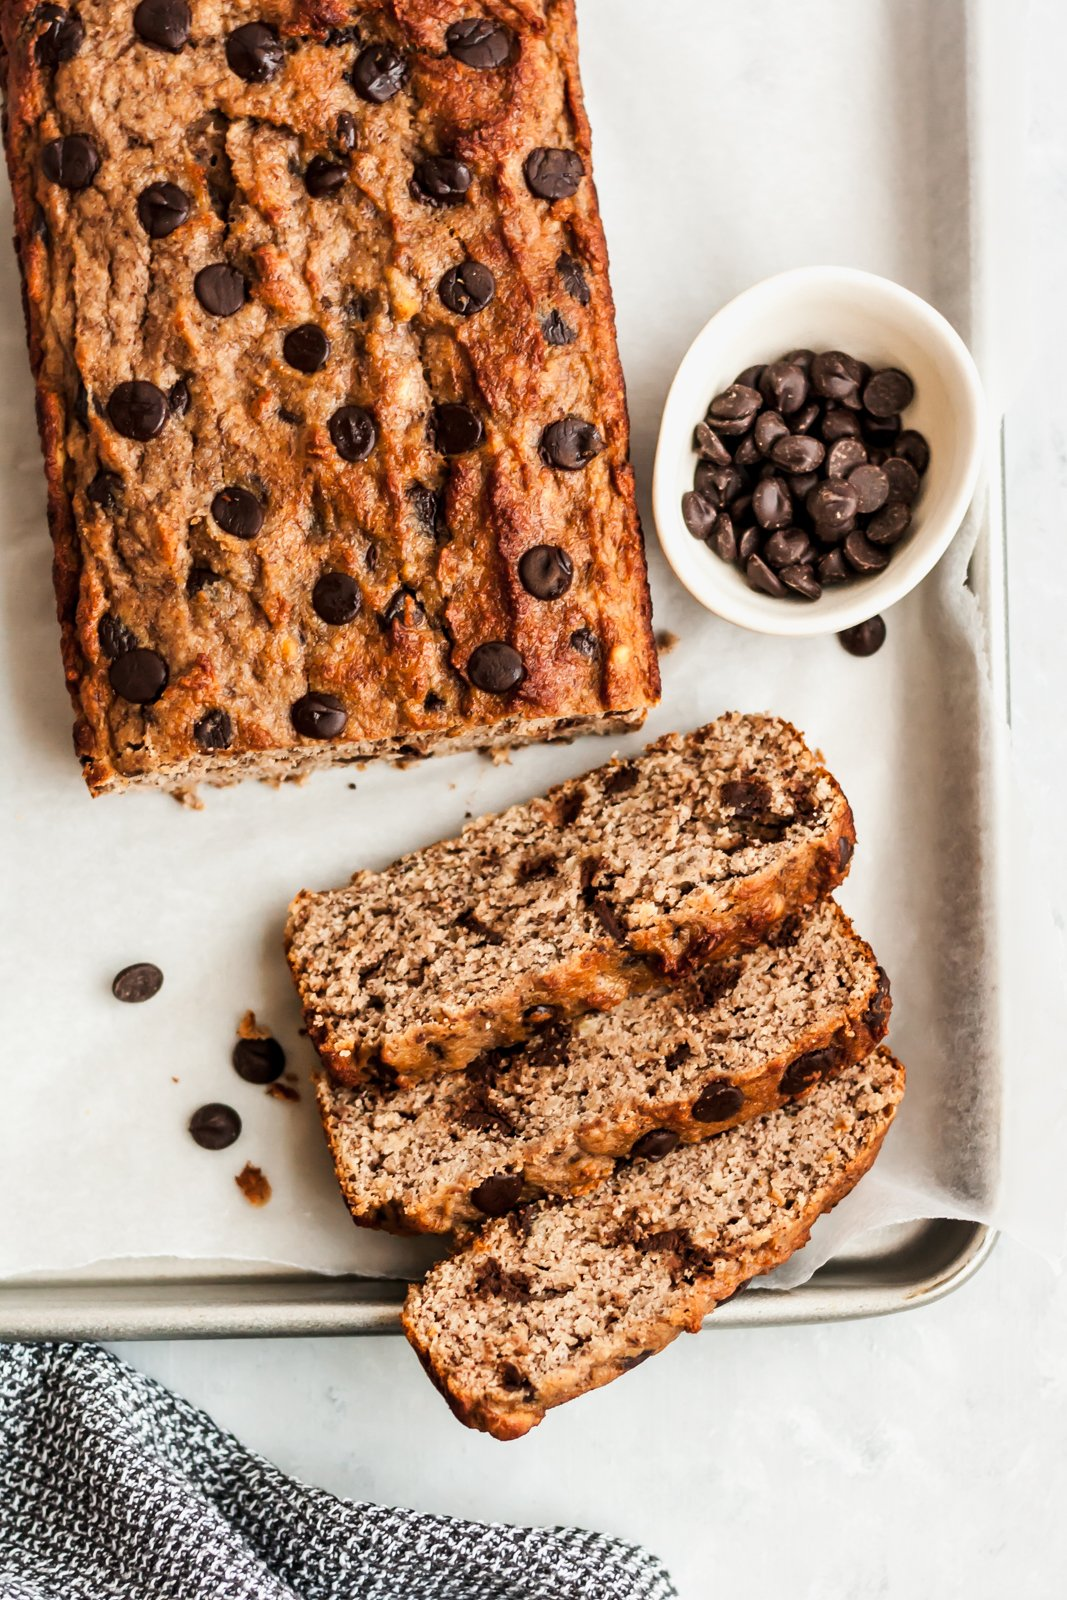 Paleo coconut flour banana bread on a baking sheet with a dish of chocolate chips